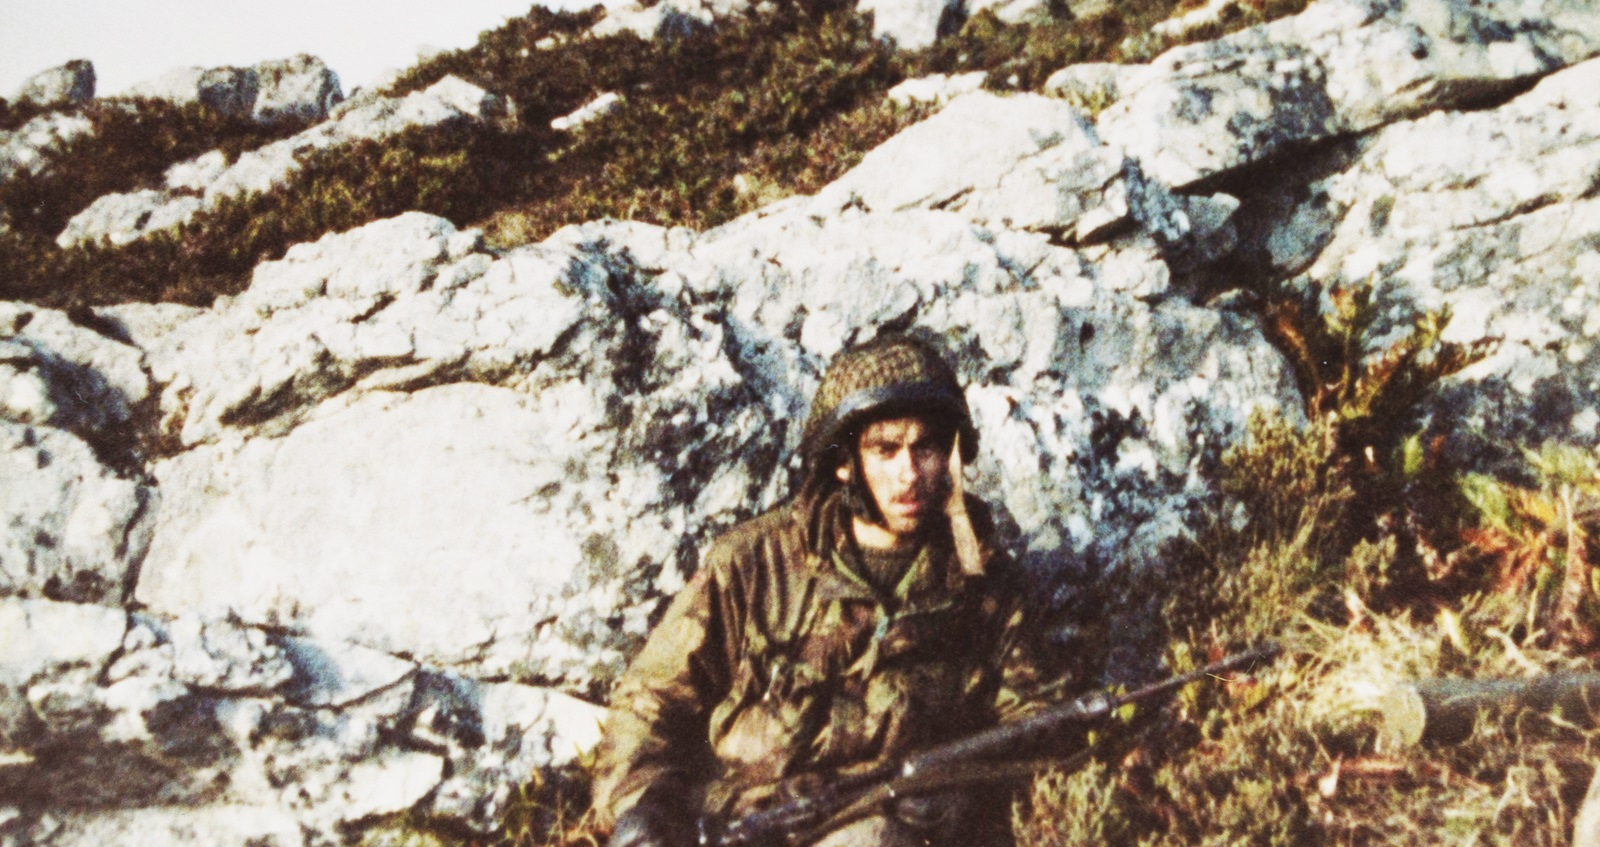 Remembering The Falklands and those who died   Royal British